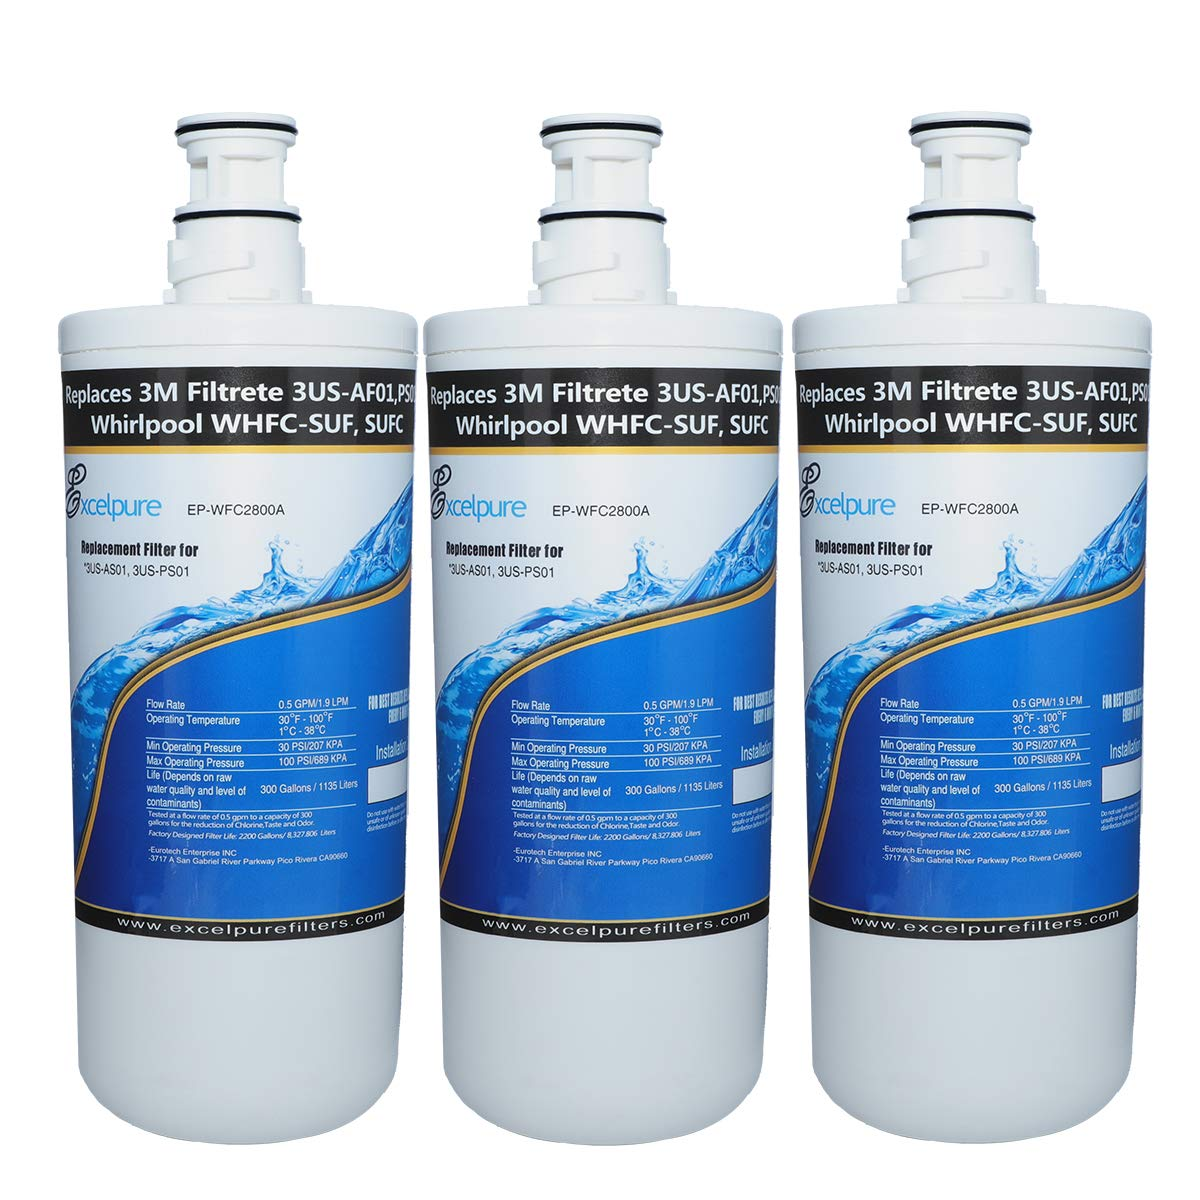 EXCELPURE Premium 3US-AF01 Undersink Standard Water Filter Replacement Compatible W/ 3M 3US-AF01, 3US-AS01, 3US-PF01, 3US-PS01, WHCF-SRC, WHCF-SUFC, WHCF-SUF - 3PACK